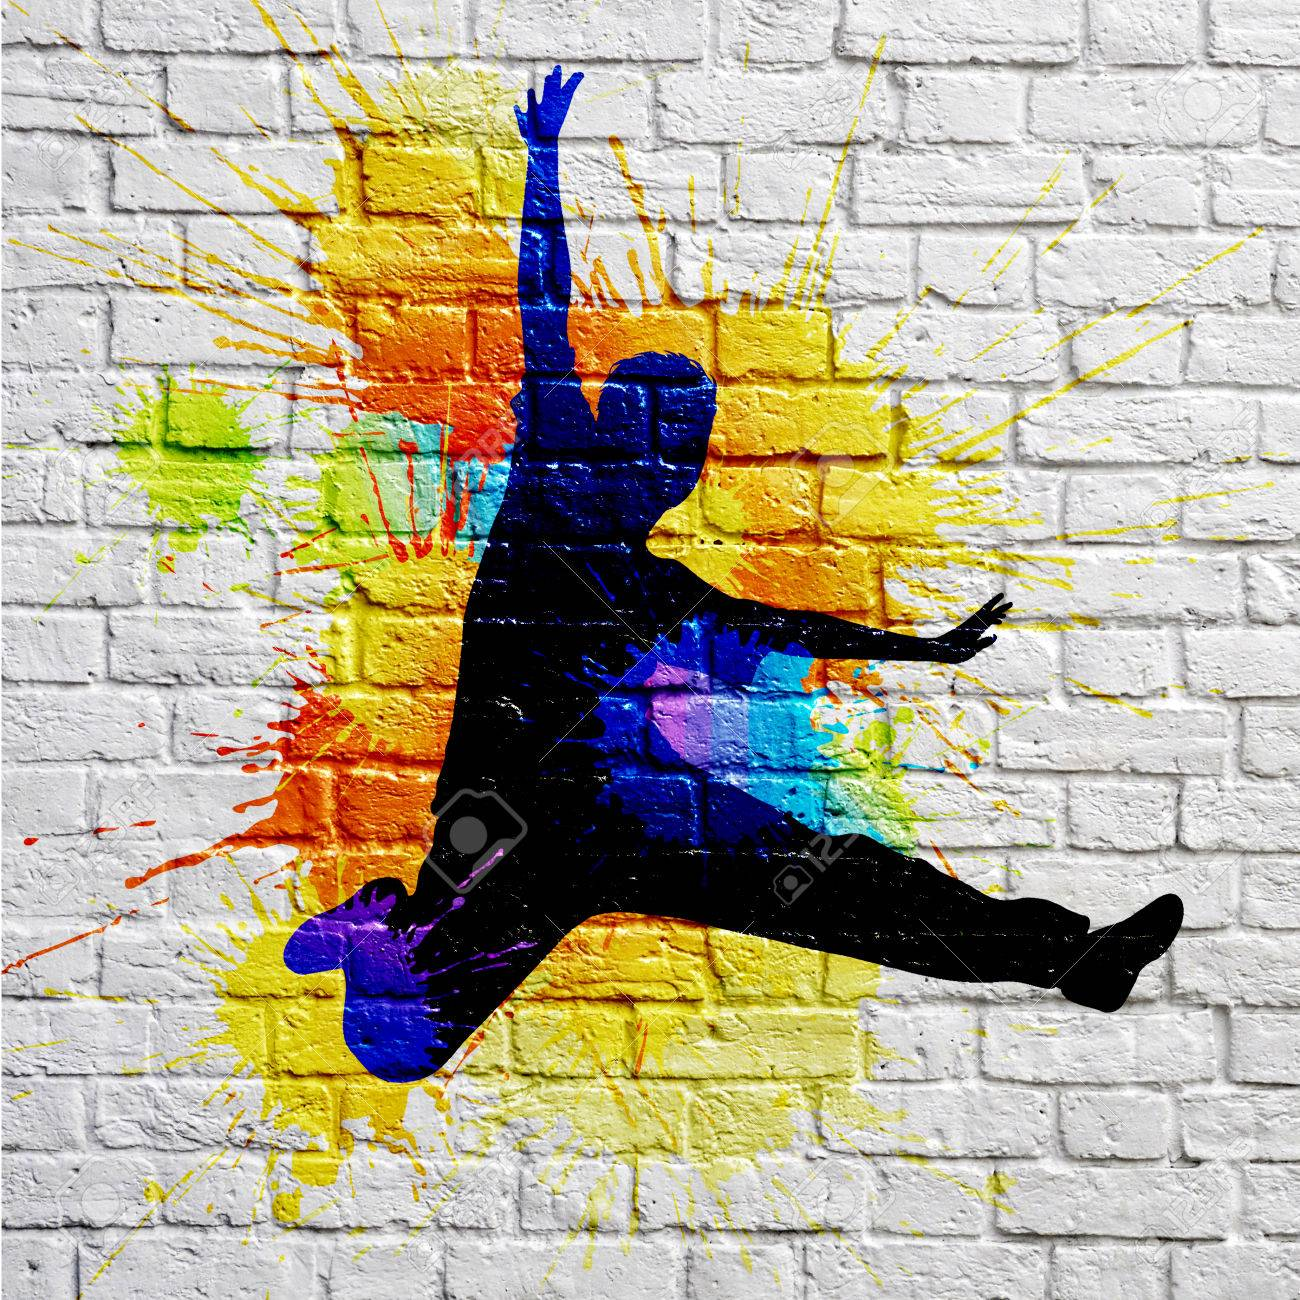 Graffiti Jumping Man On A Brick Wall Stock Photo, Picture And ...